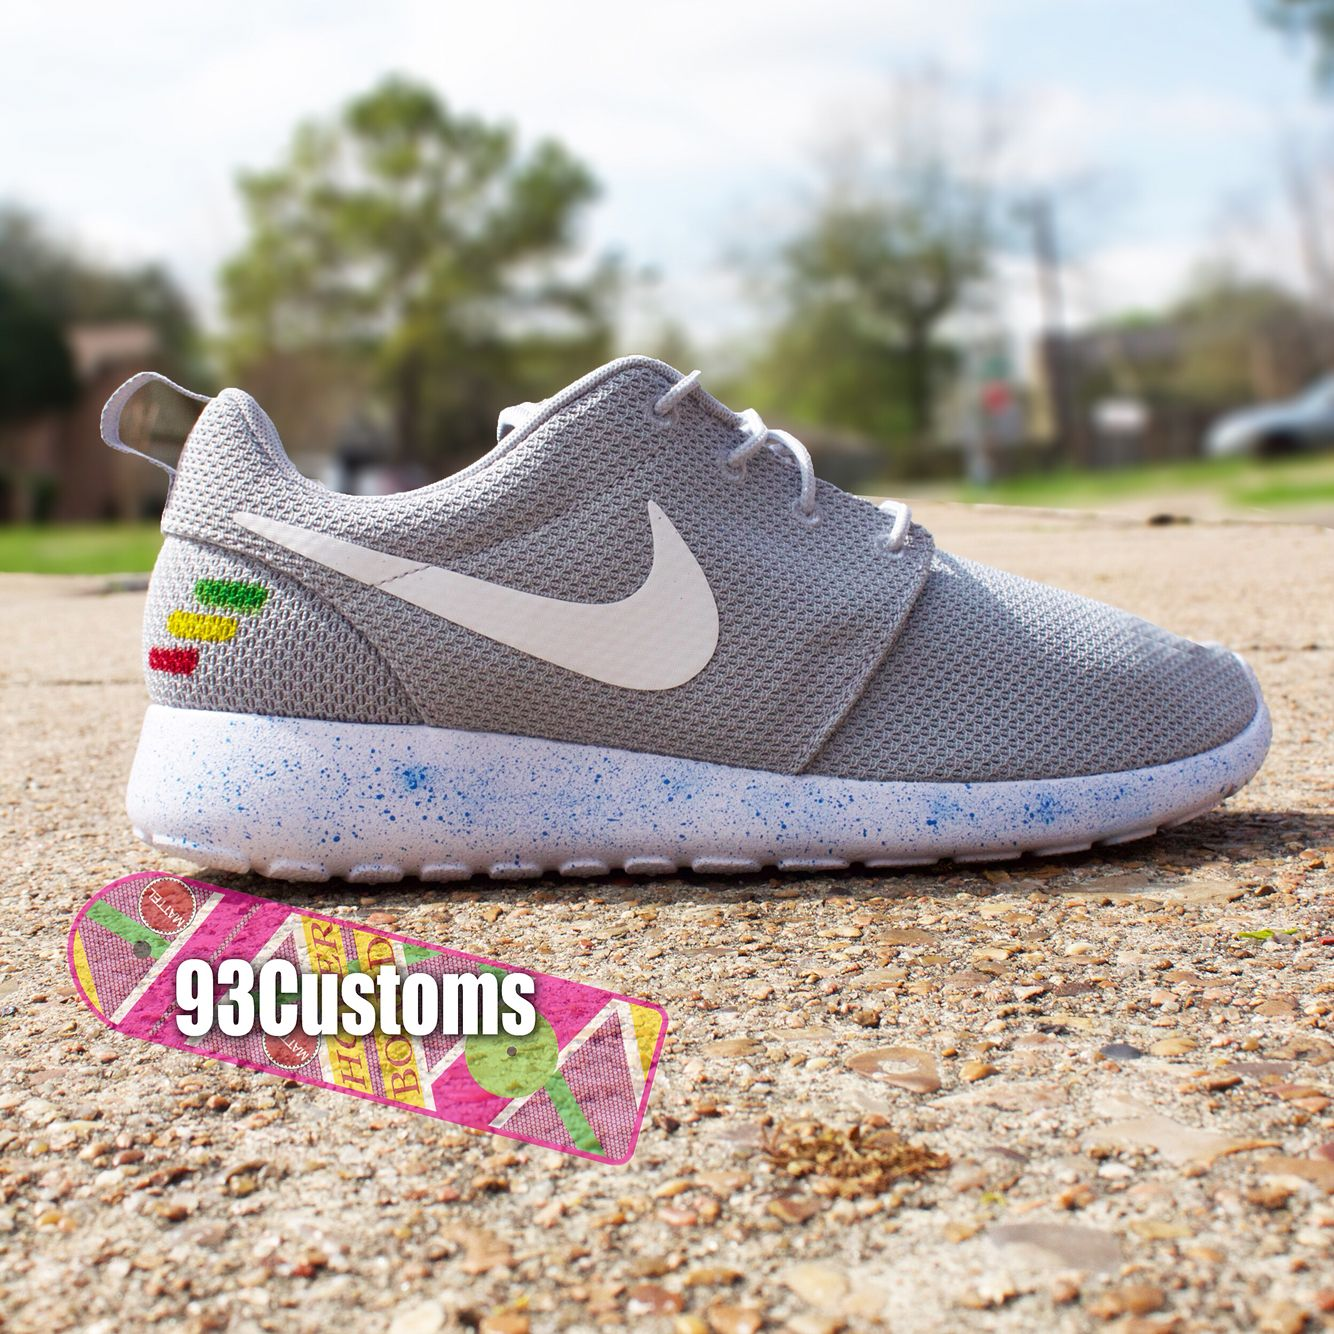 cc242ebf546f Custom Marty McFly Air Mag Inspired Roshe Runs! Make sure to follow on  Instagram